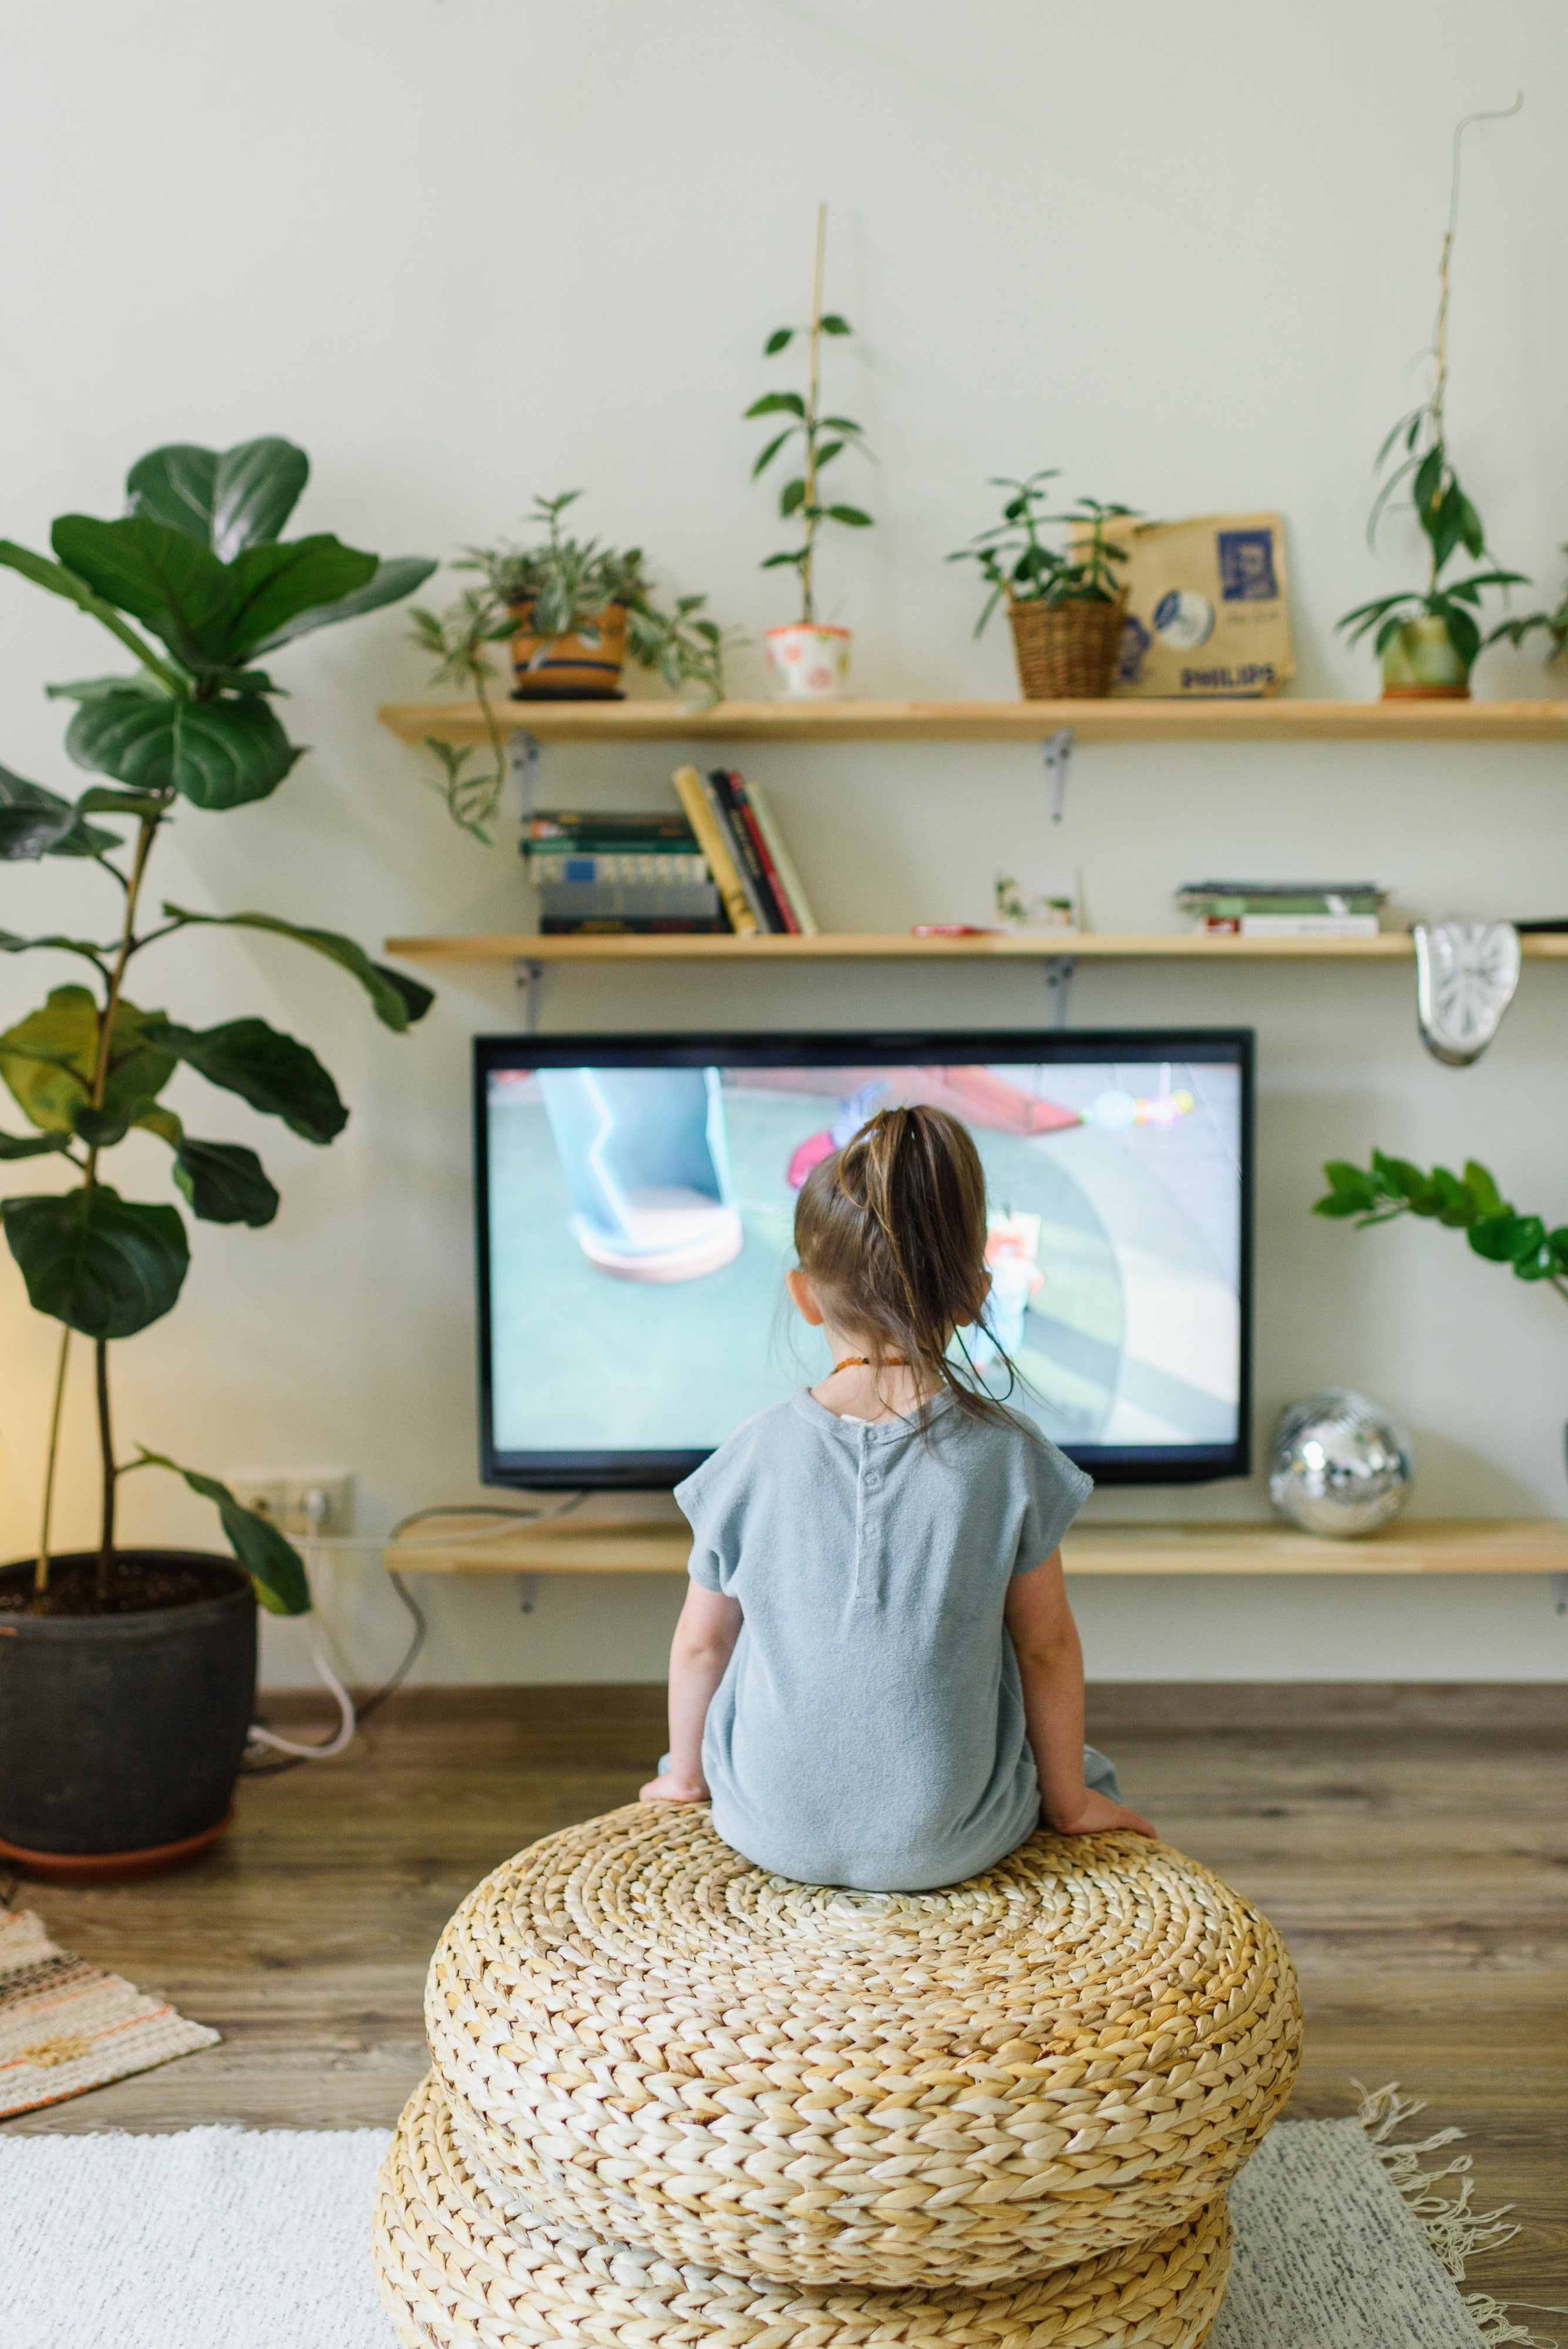 Girl watching television | Photo: Pexels